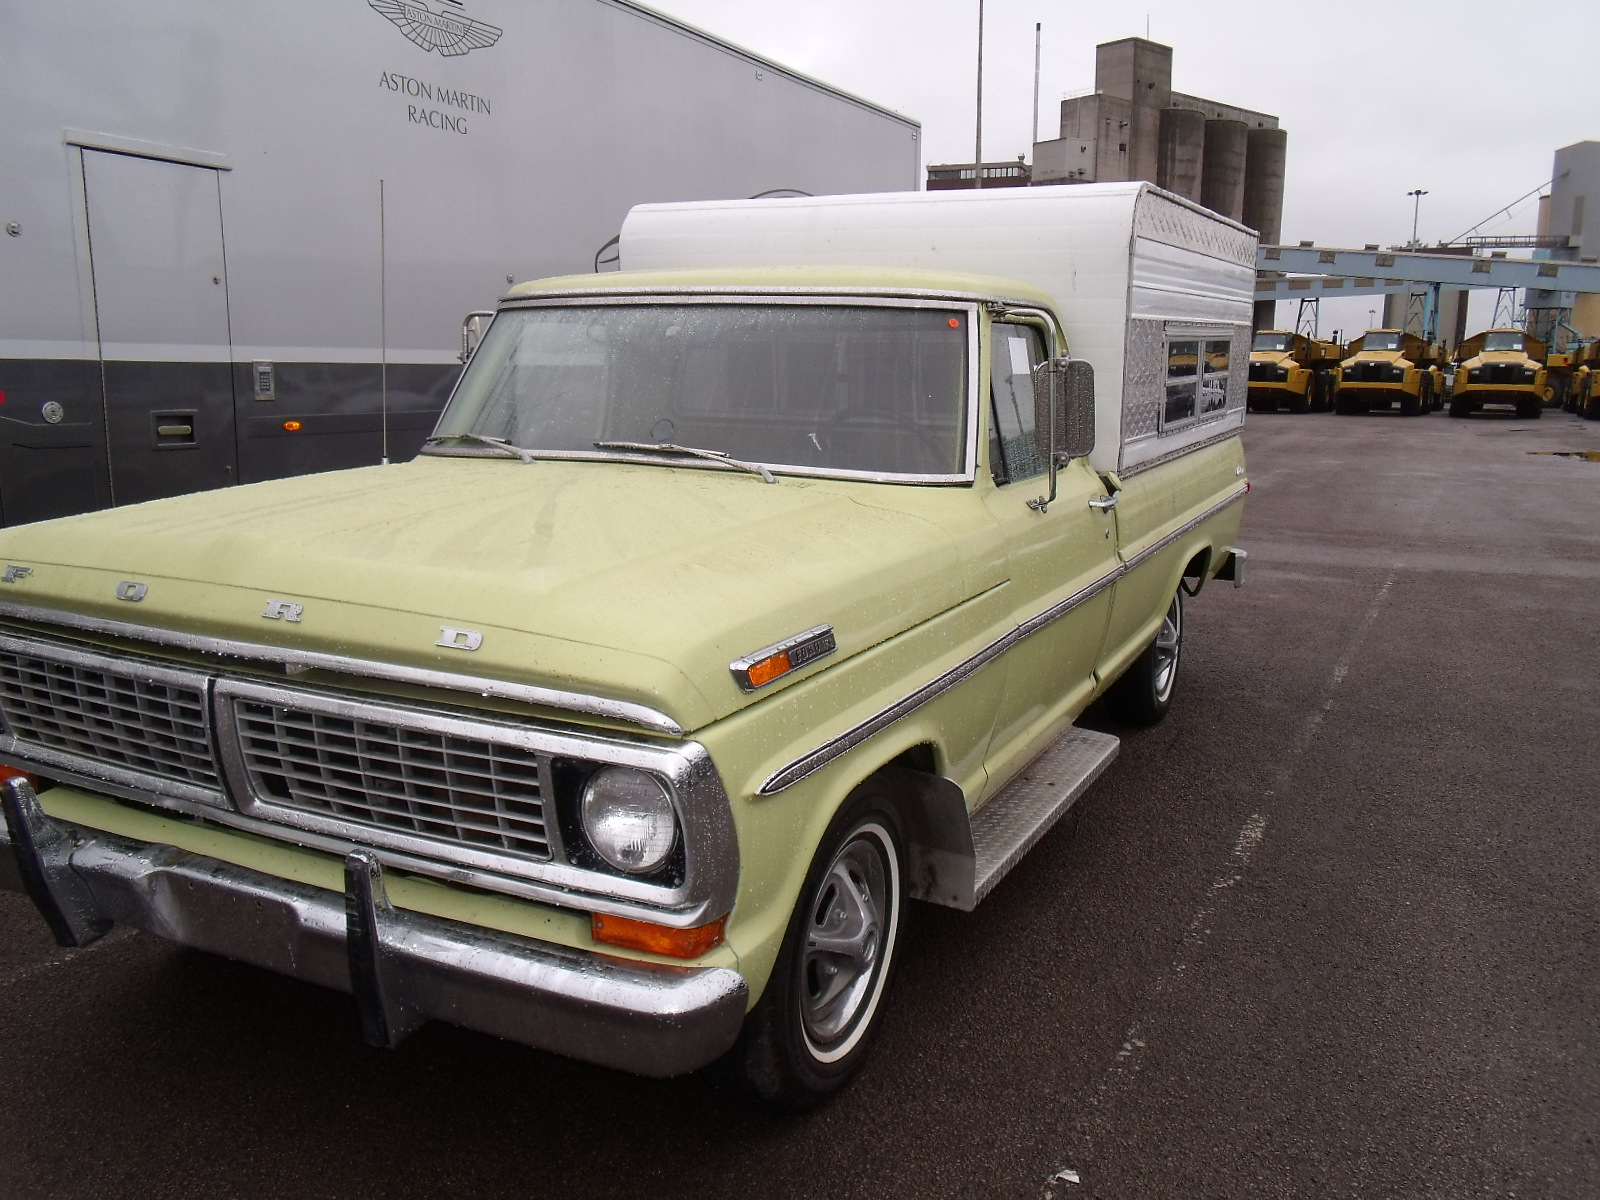 hill shipping www hillshipping com 1970 ford pick up truck from the usa to the uk. Black Bedroom Furniture Sets. Home Design Ideas